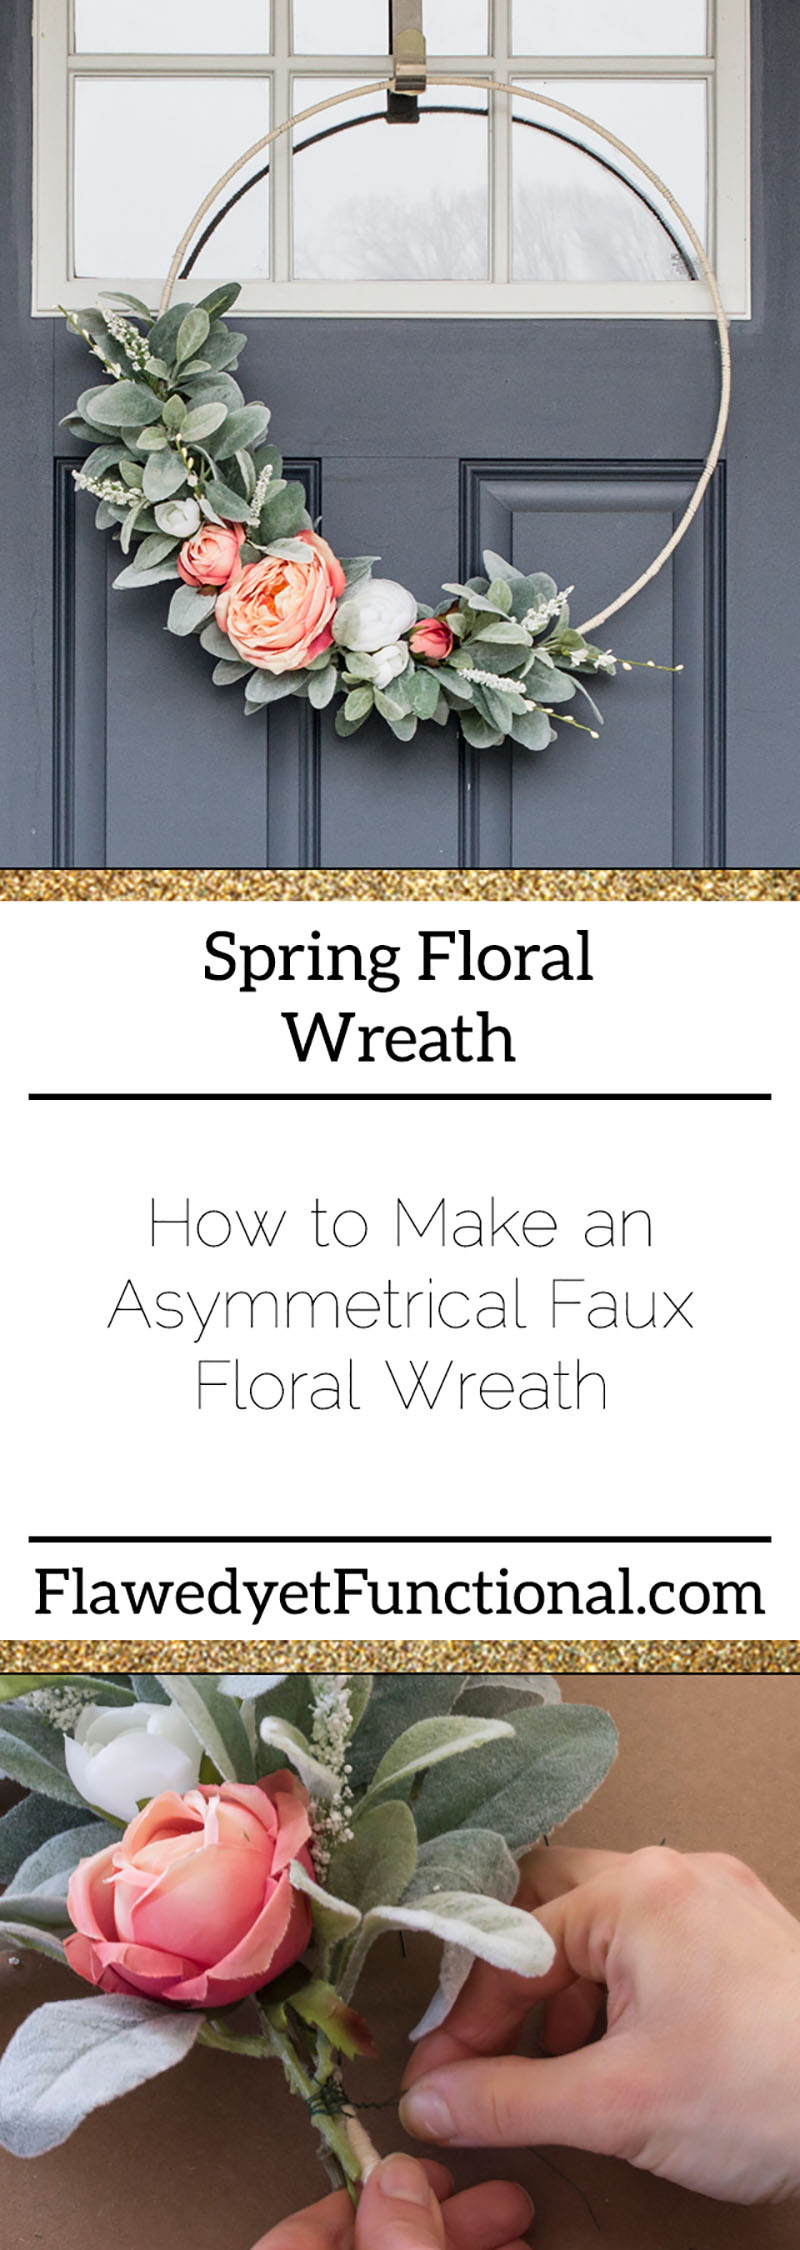 https://thecottagemarket.com/wp-content/uploads/2019/02/Spring-Time-Farmhouse-Wreath-3.jpg